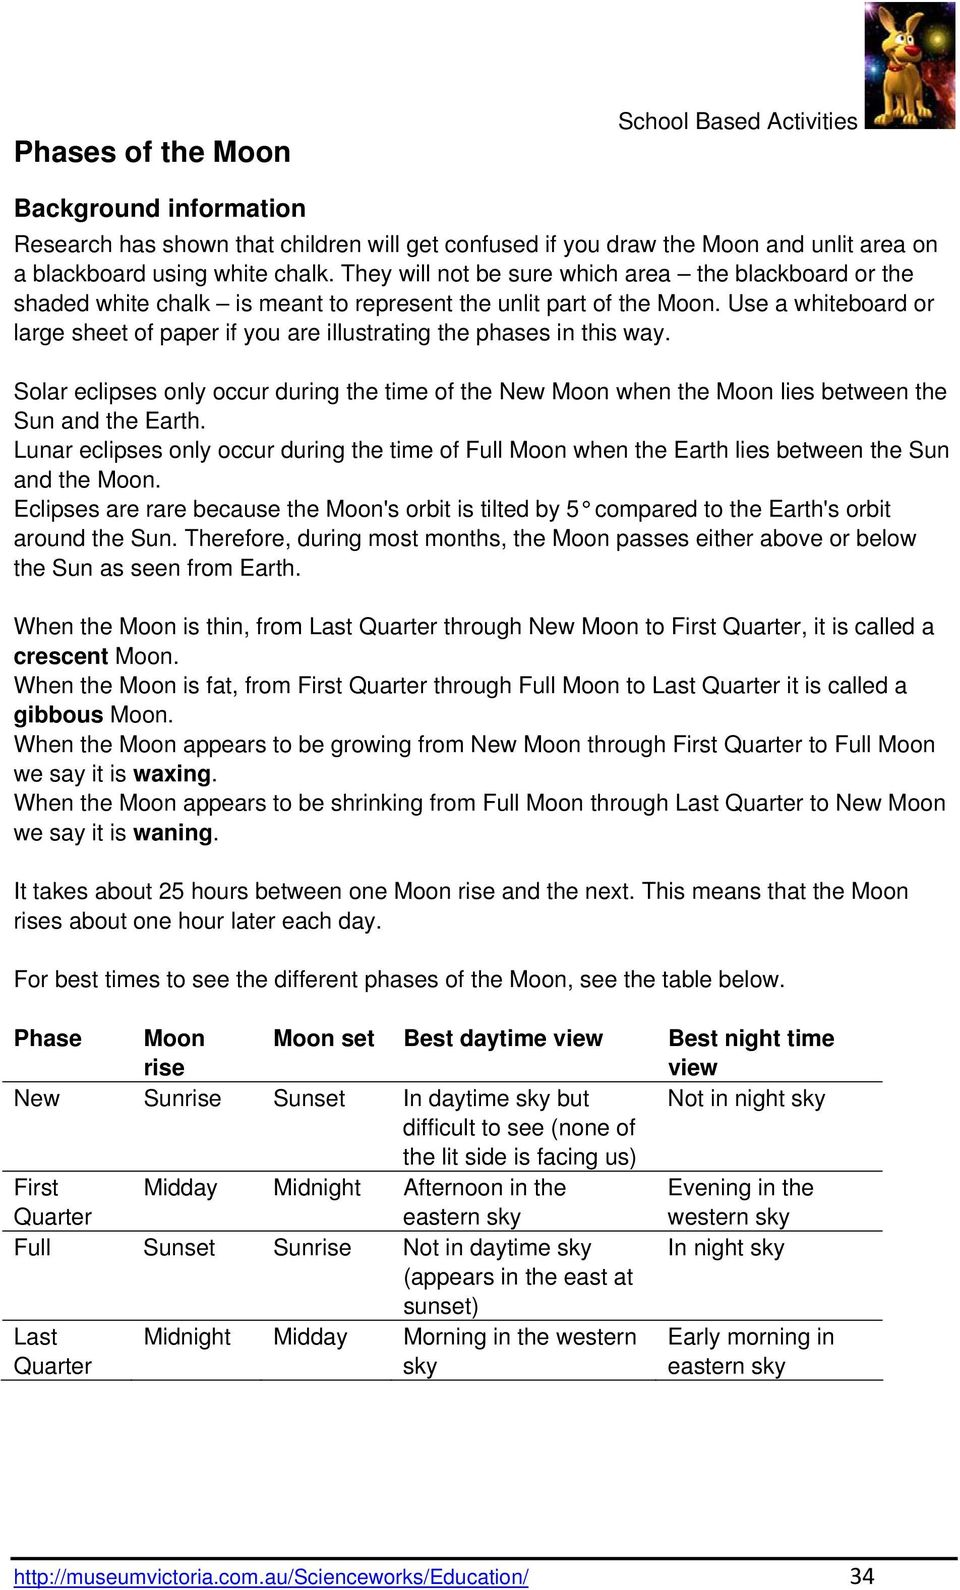 Use a whiteboard or large sheet of paper if you are illustrating the phases in this way. Solar eclipses only occur during the time of the New Moon when the Moon lies between the Sun and the Earth.